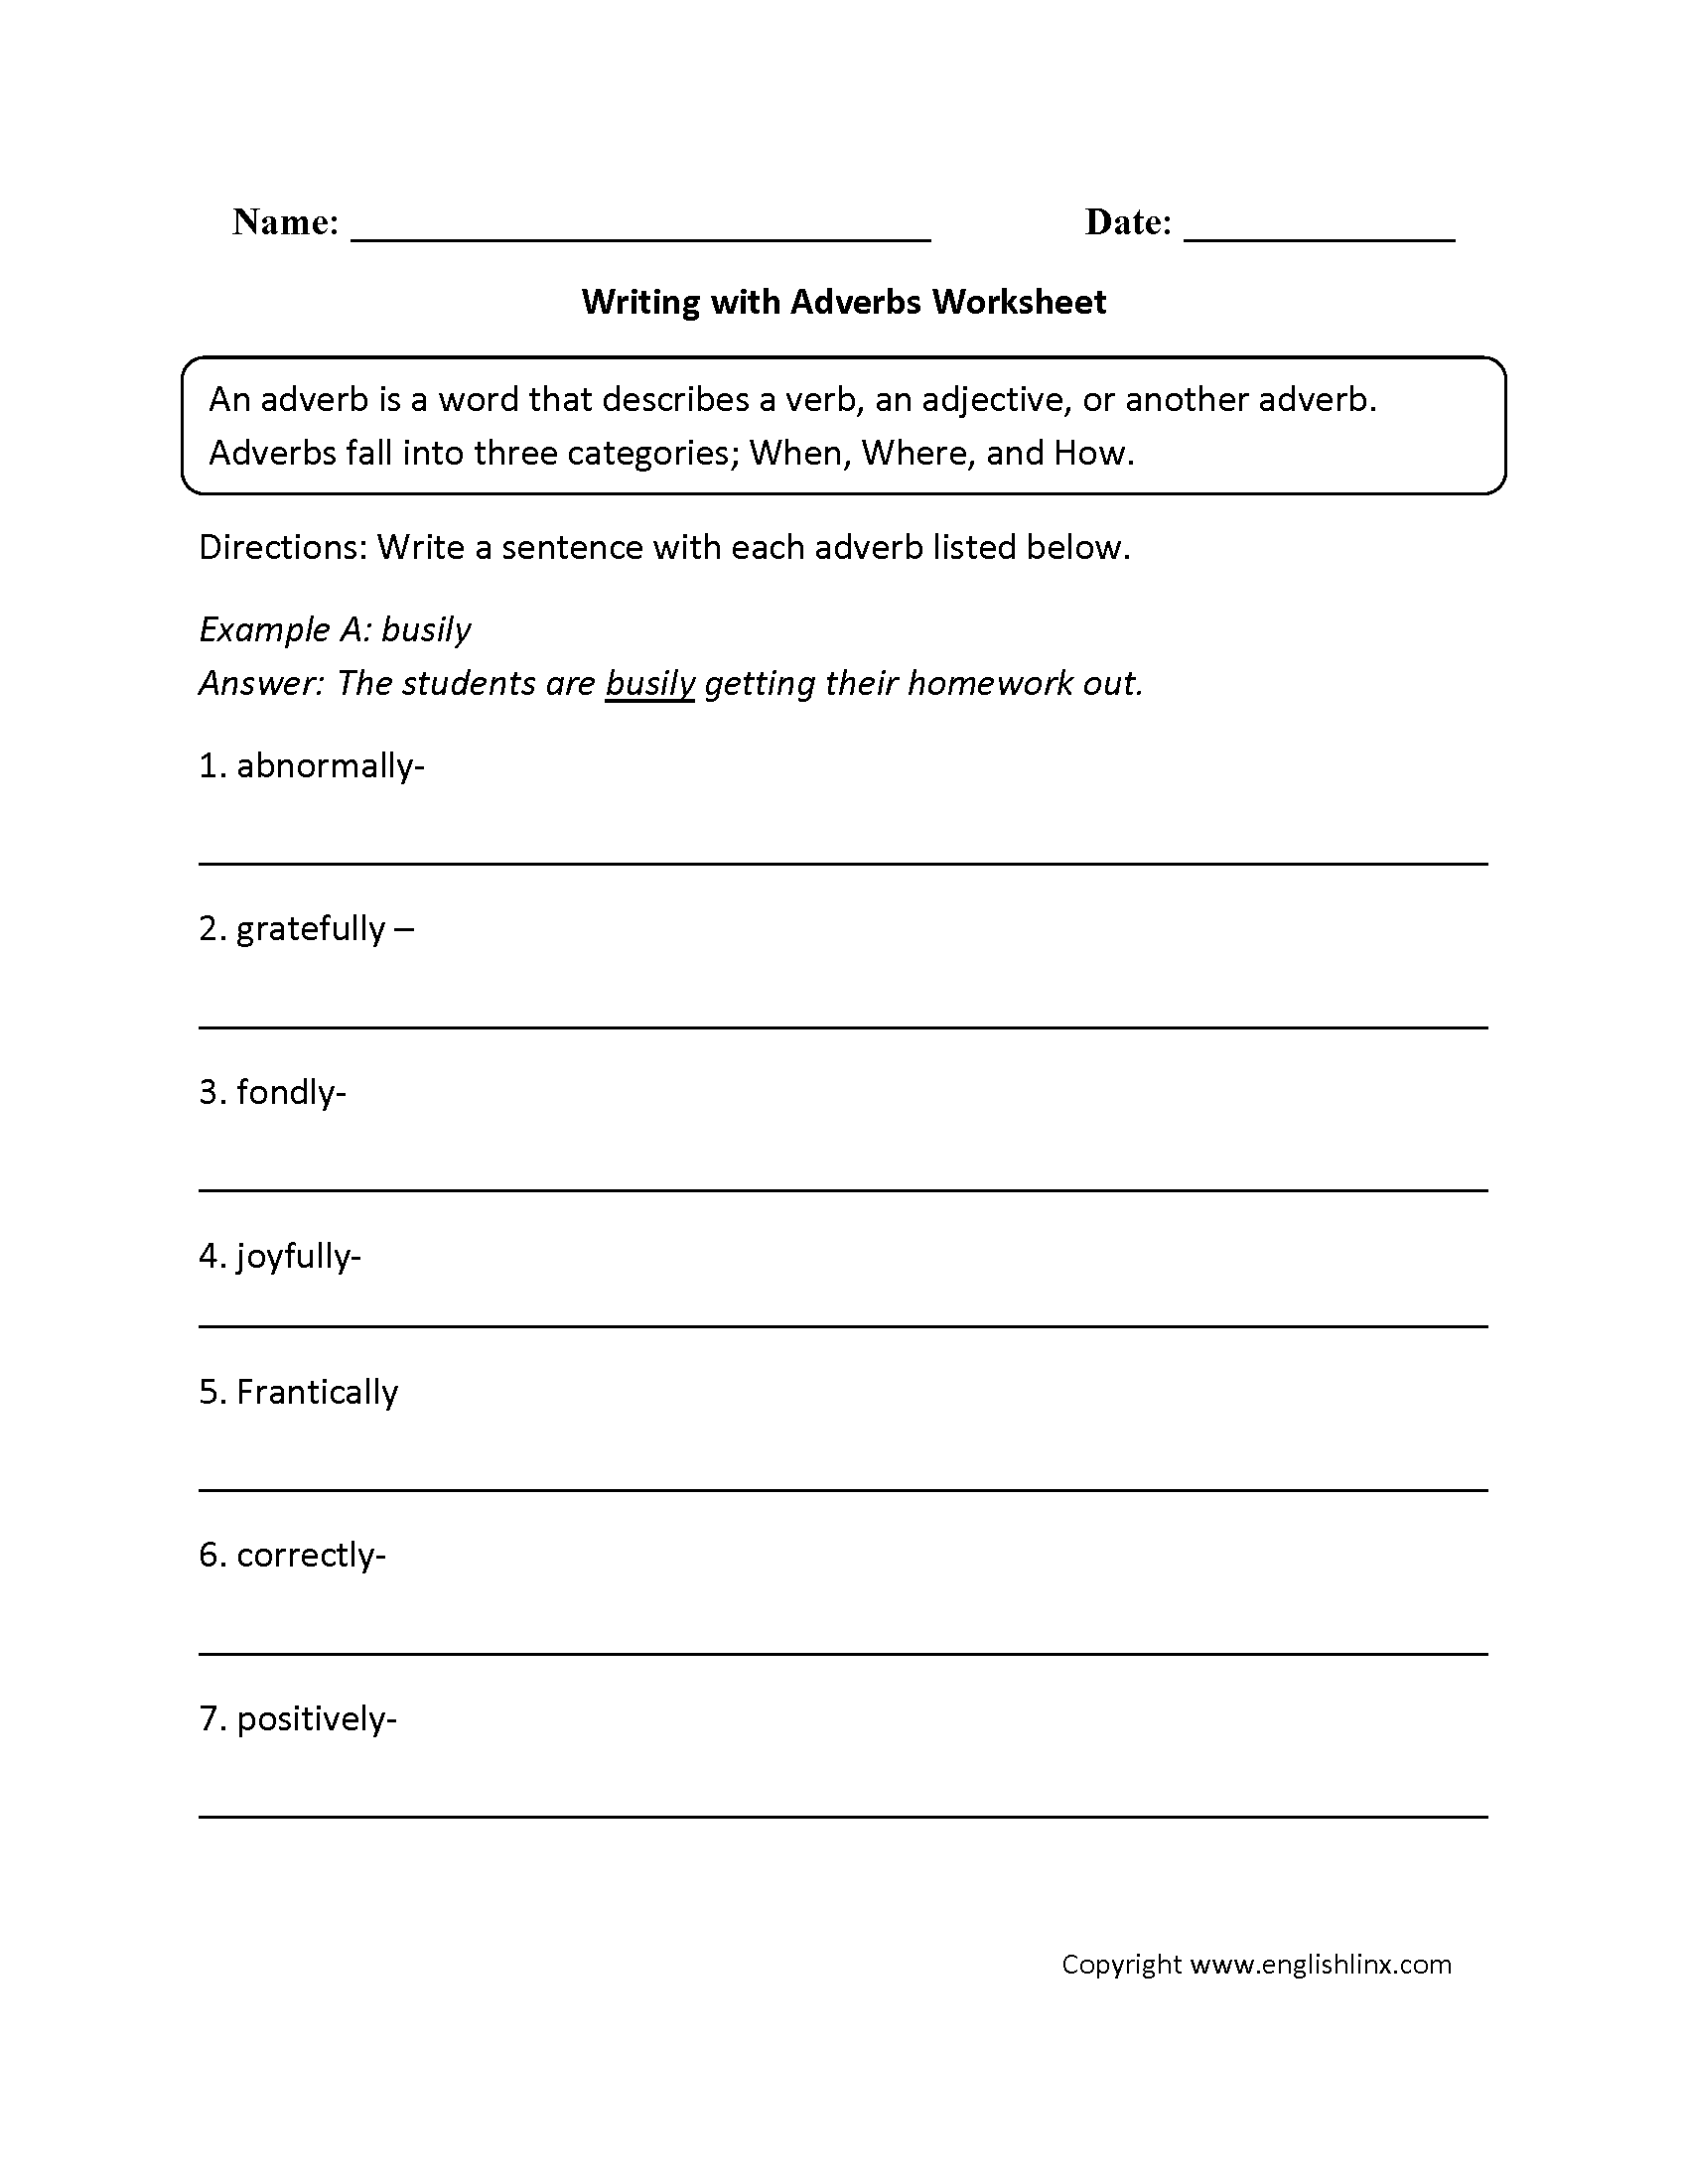 Free Worksheet Identifying Parts Of Speech Worksheet adverbs worksheets regular grades 6 8 worksheets